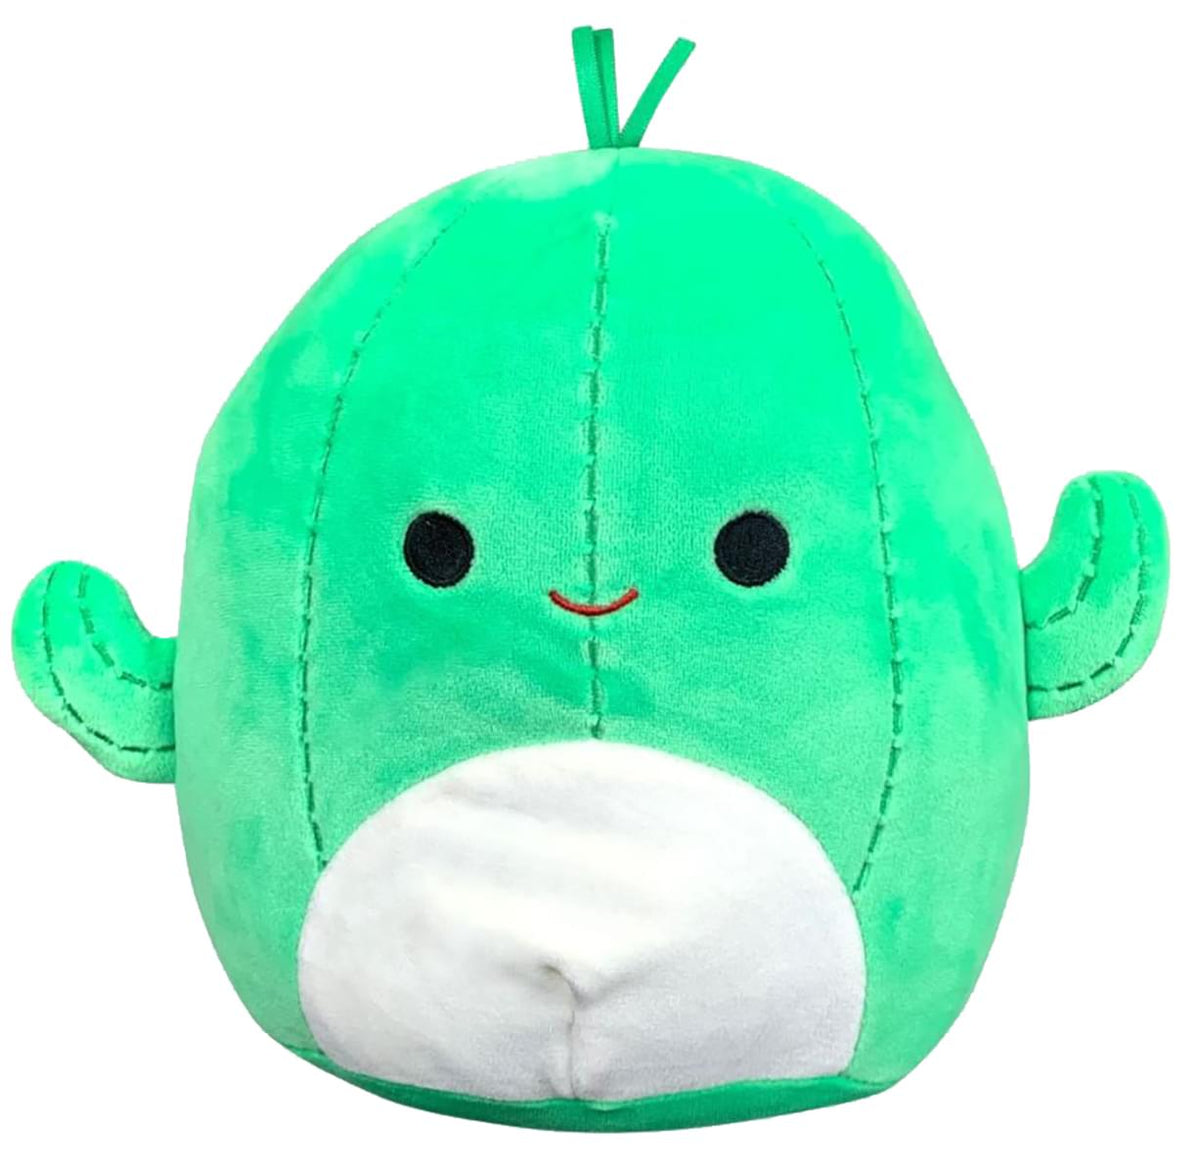 Squishmallow 24 Inch Plush | Marcellus the Boy Cactus